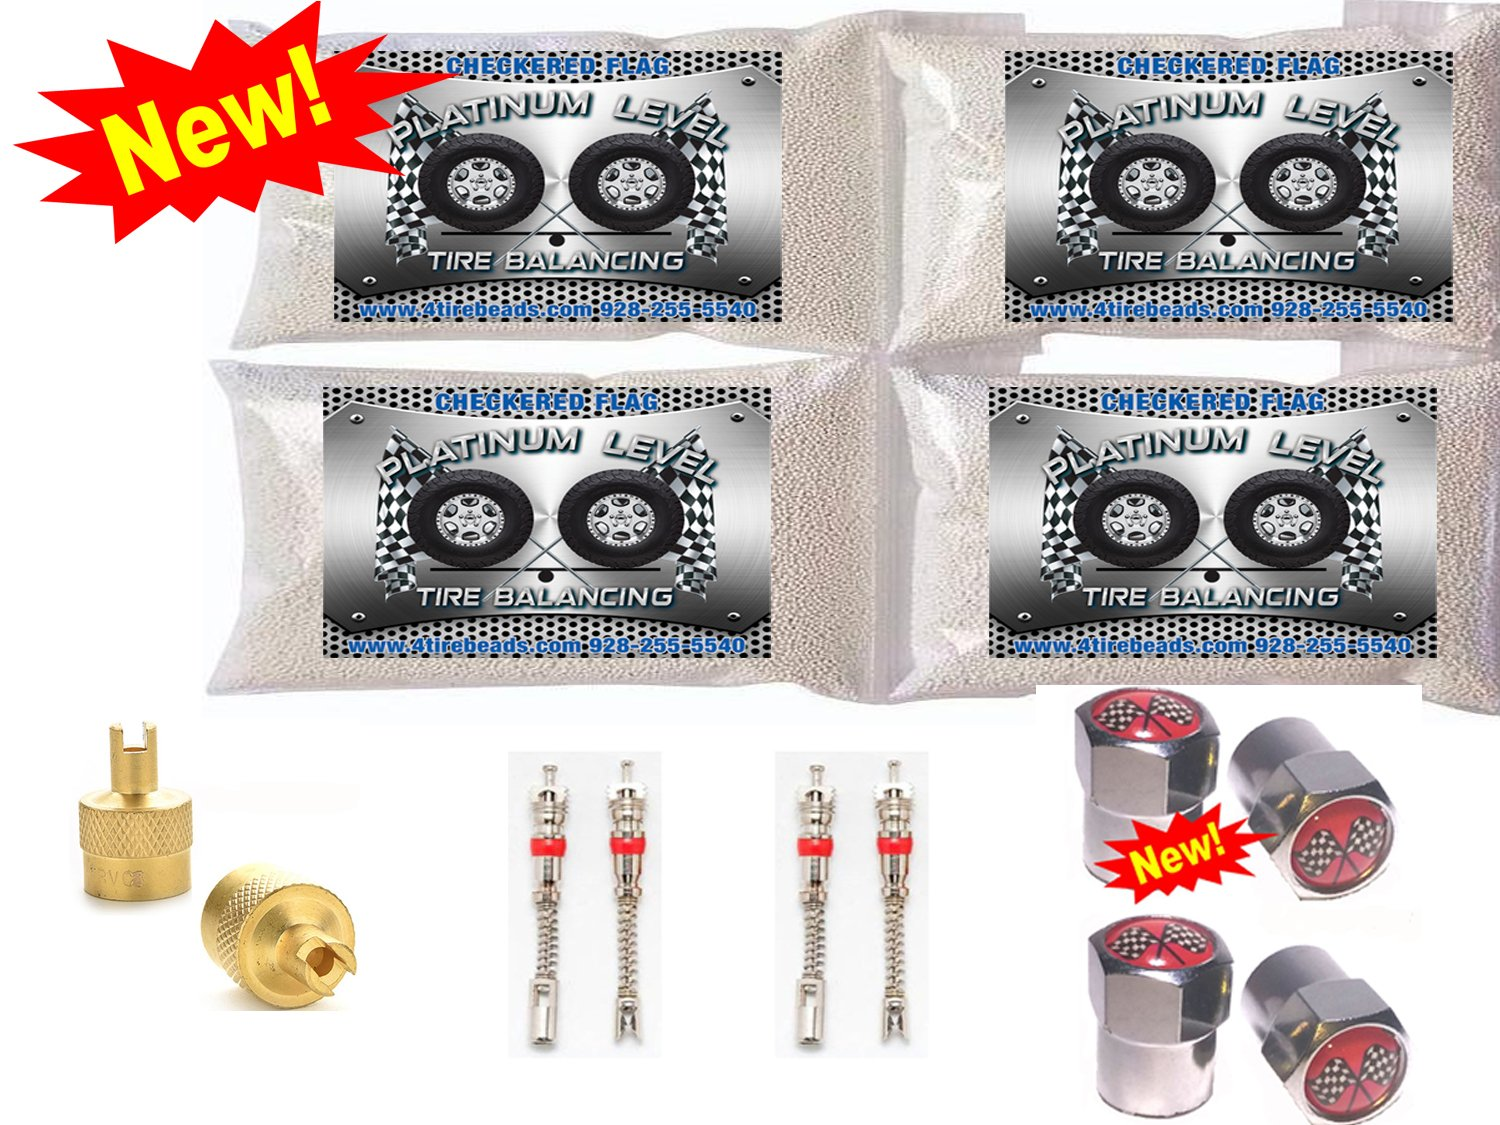 4-4oz Bags Tire Balancing Beads by Checkered Flag Tires, Platinum Level no Damage tire Balance Beads, with Filtered Valve cores, red caps, 1 Gold core Tool, Balancing Beads CFTB CFTB-4-4